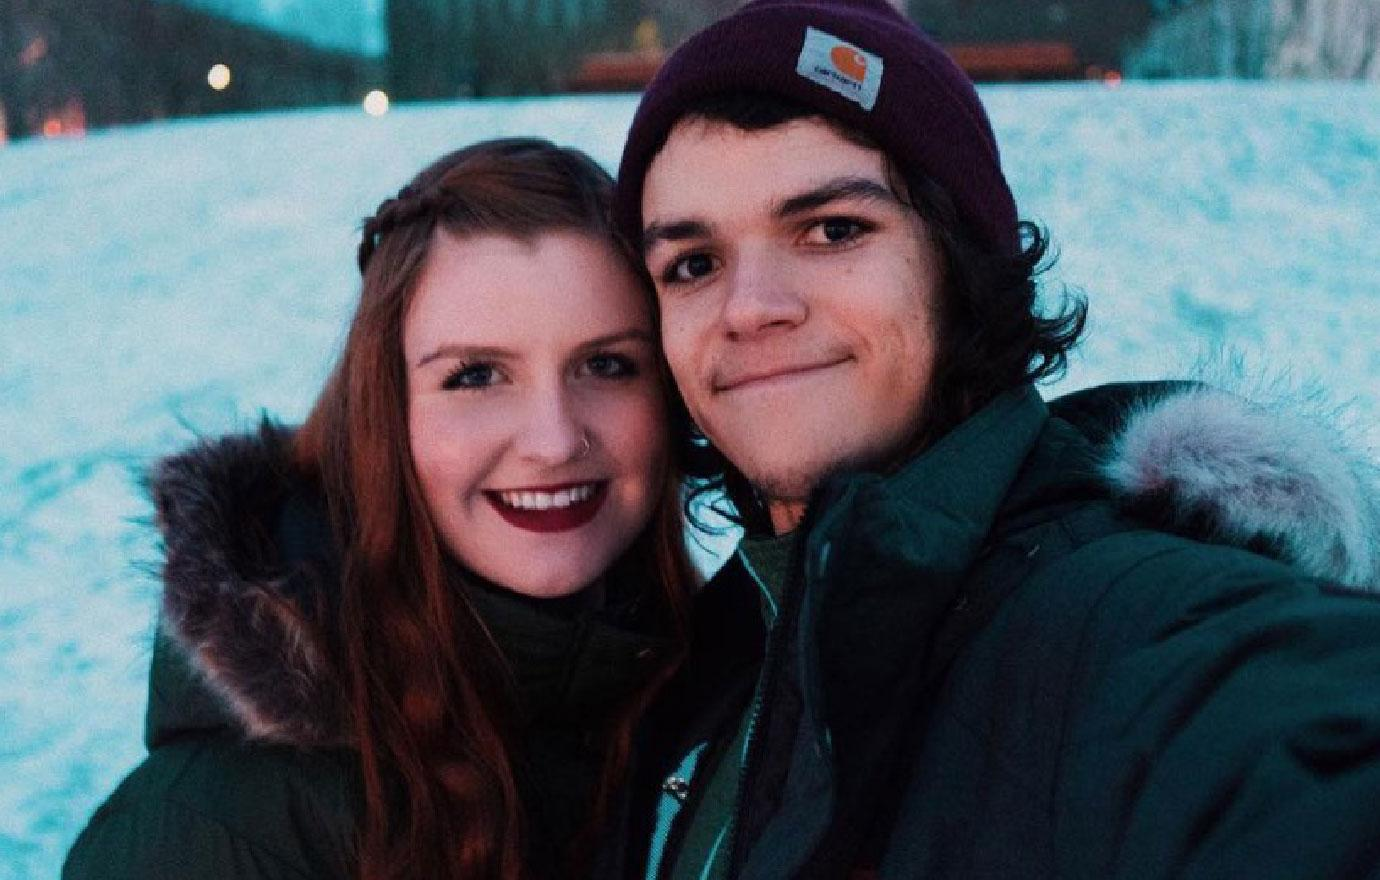 //jacob roloff fiance isabel rock mends family feud pp